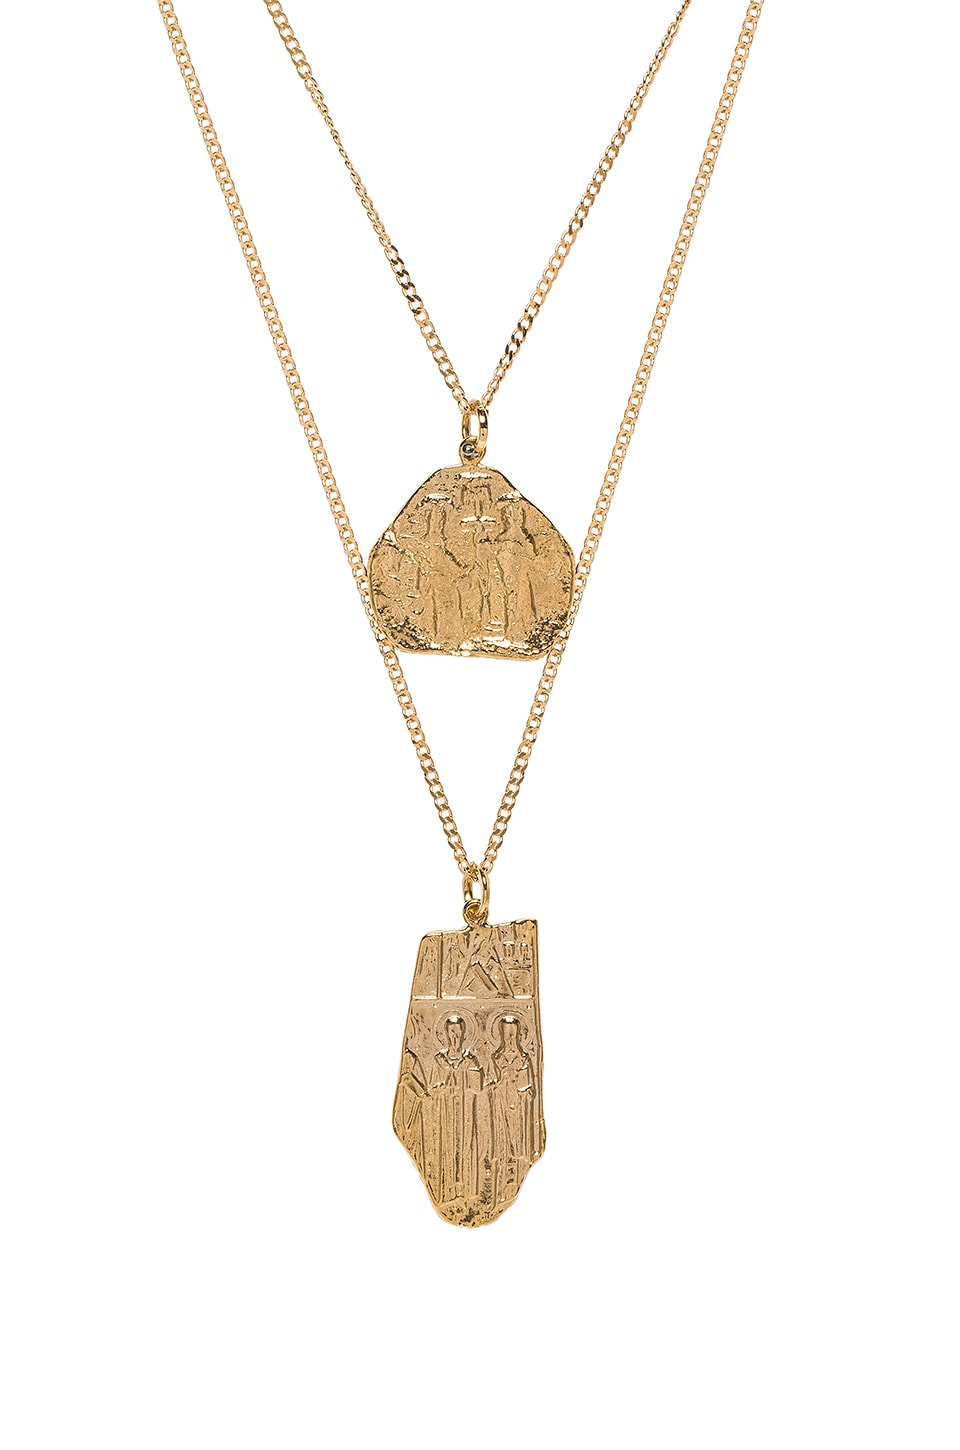 JOOLZ BY MARTHA CALVO The Creed Collection Necklace Set in Metallic Gold